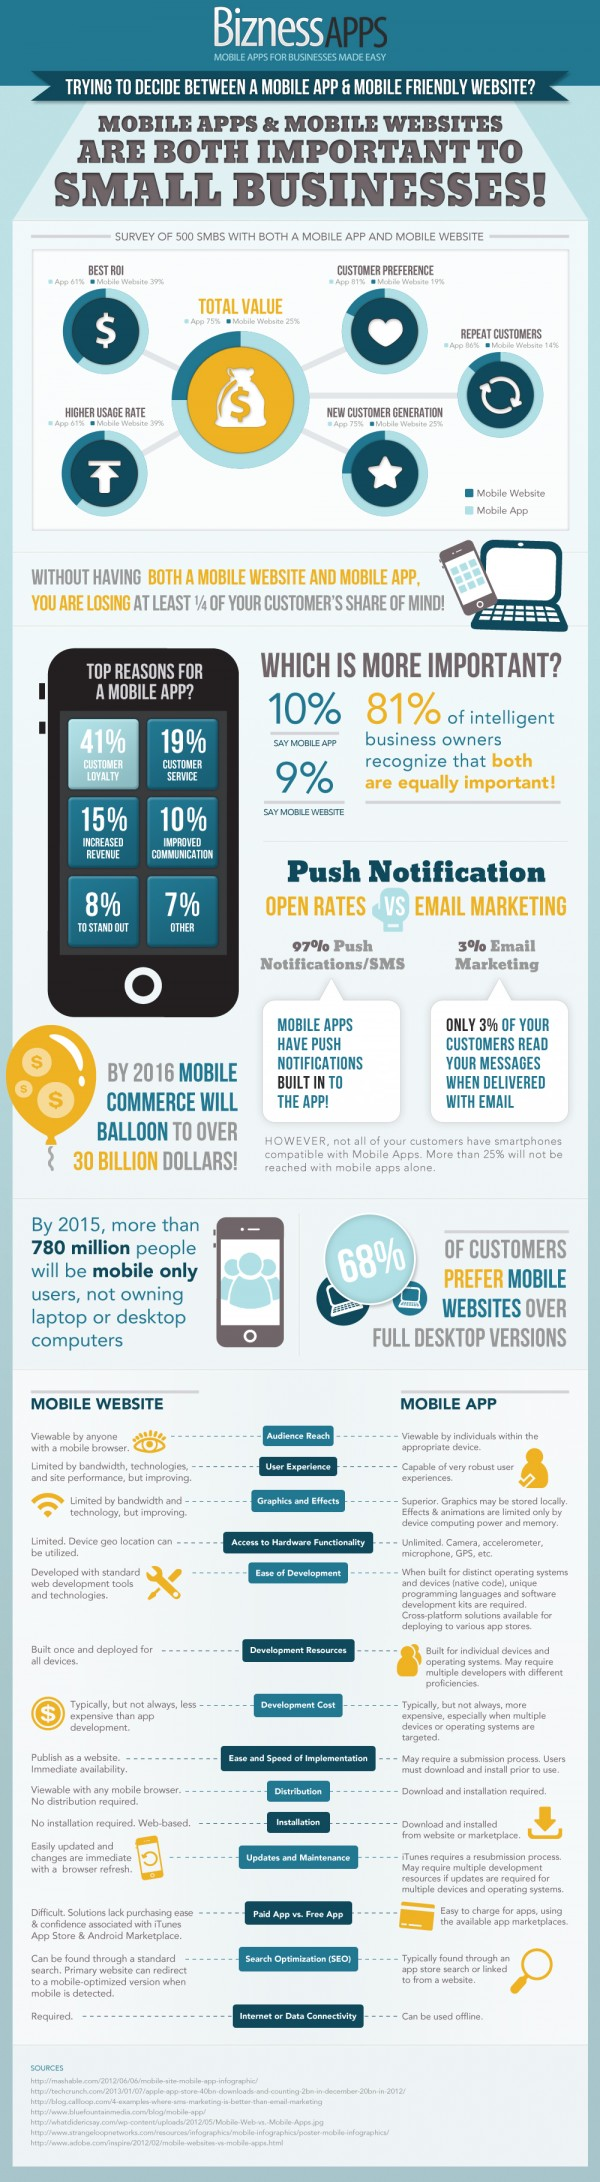 Mobile App vs Mobile Website? What's better for business? 14 decision makers